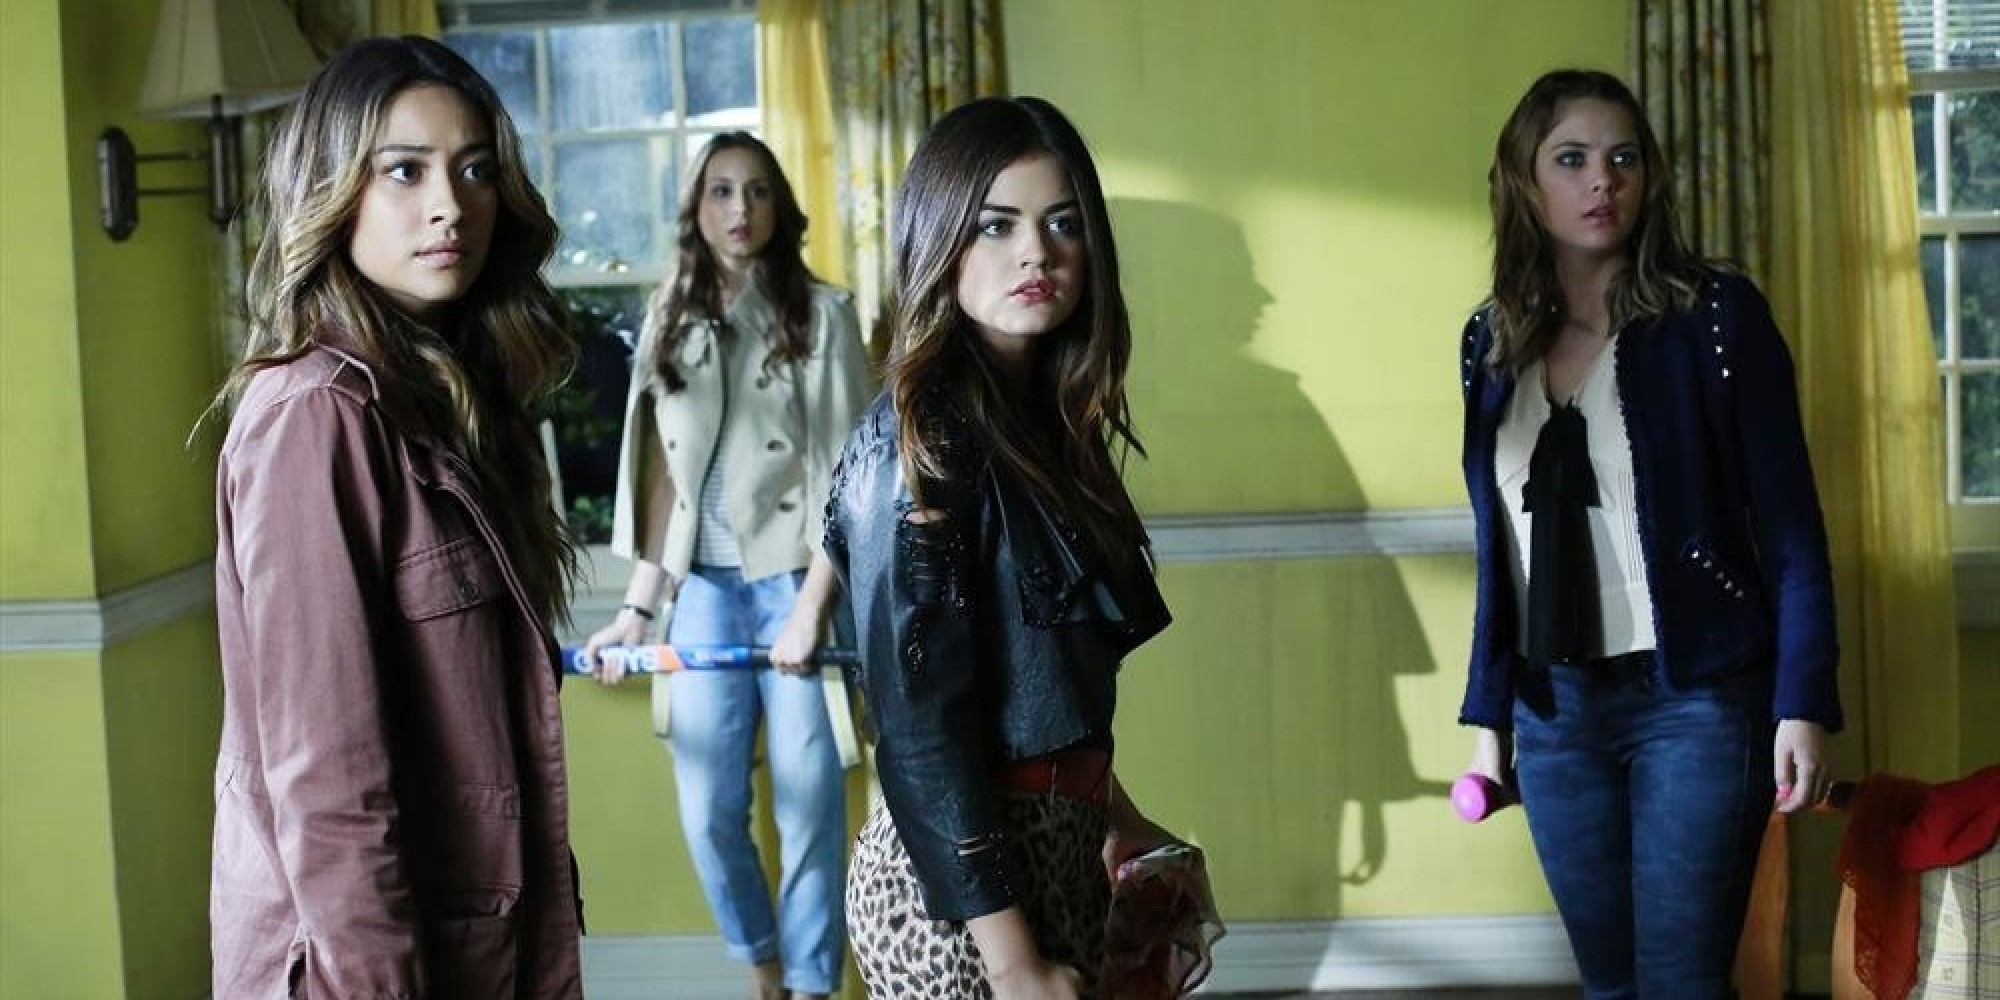 Pretty little liars premiere date in Australia